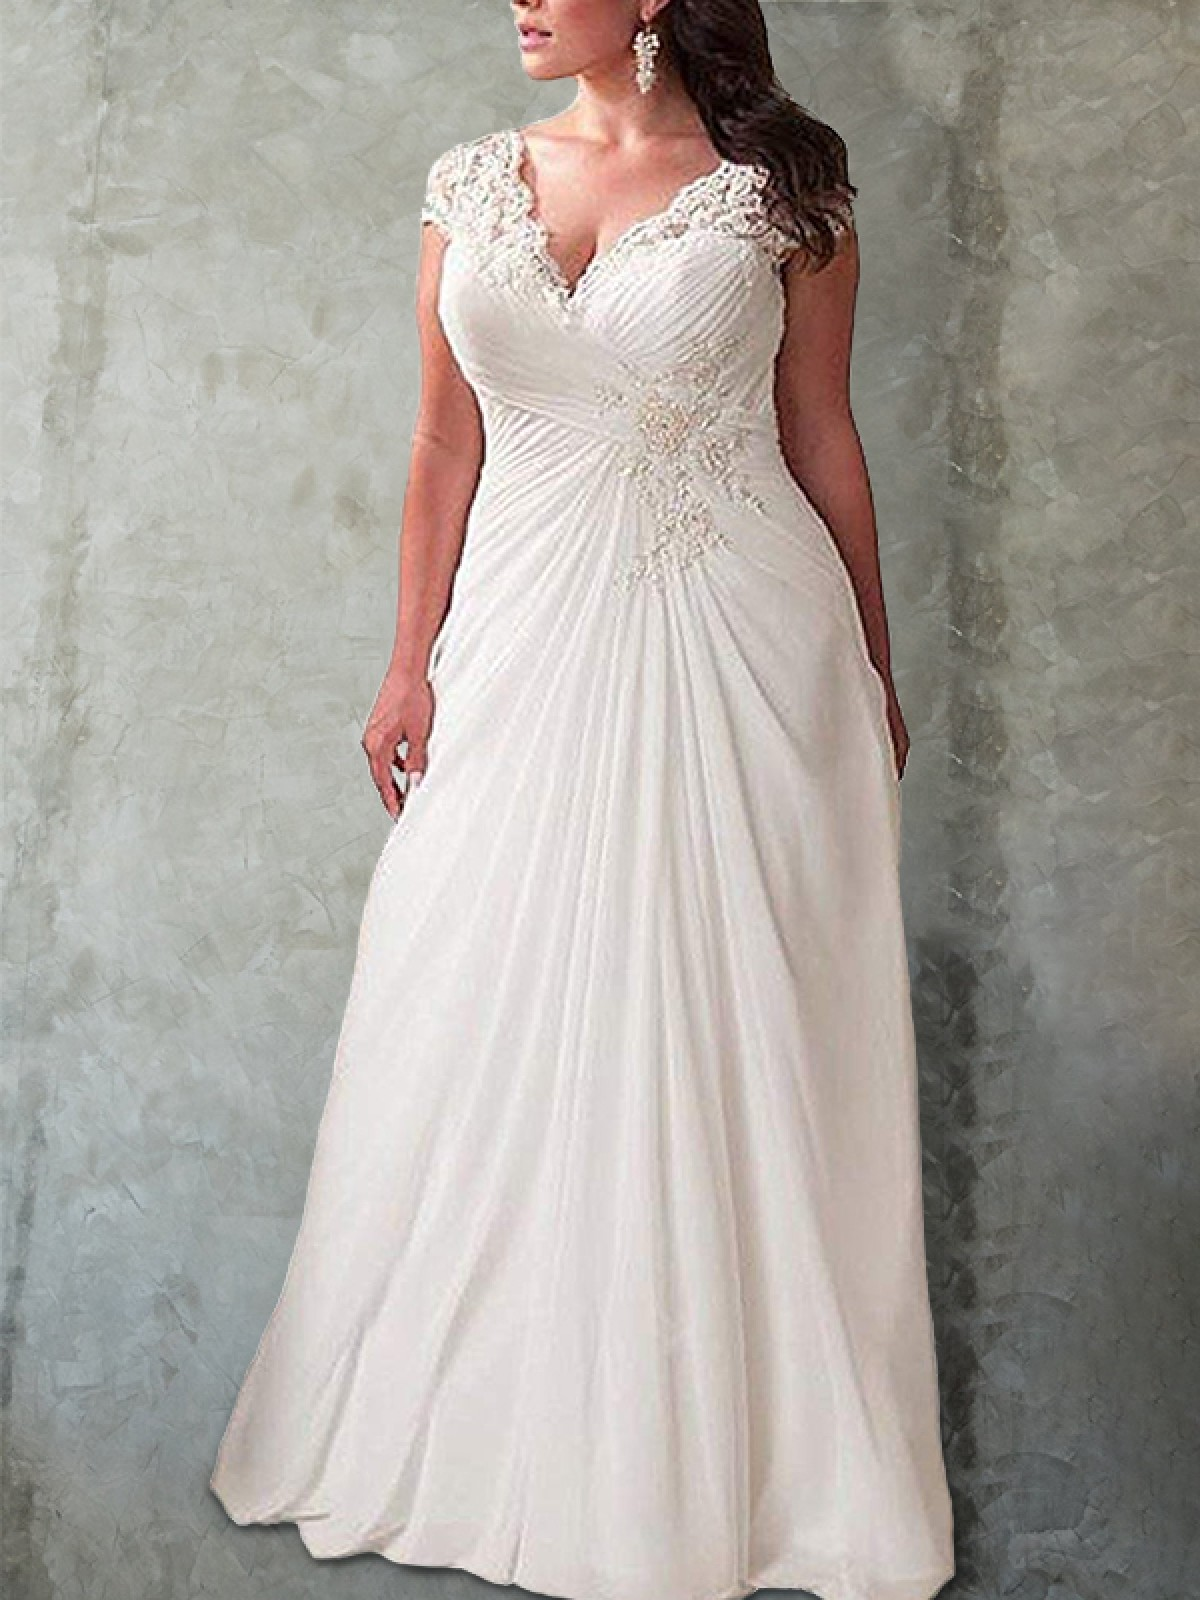 Plus Size Wedding Dresses, Chic Wedding Dresses Plus Size ...